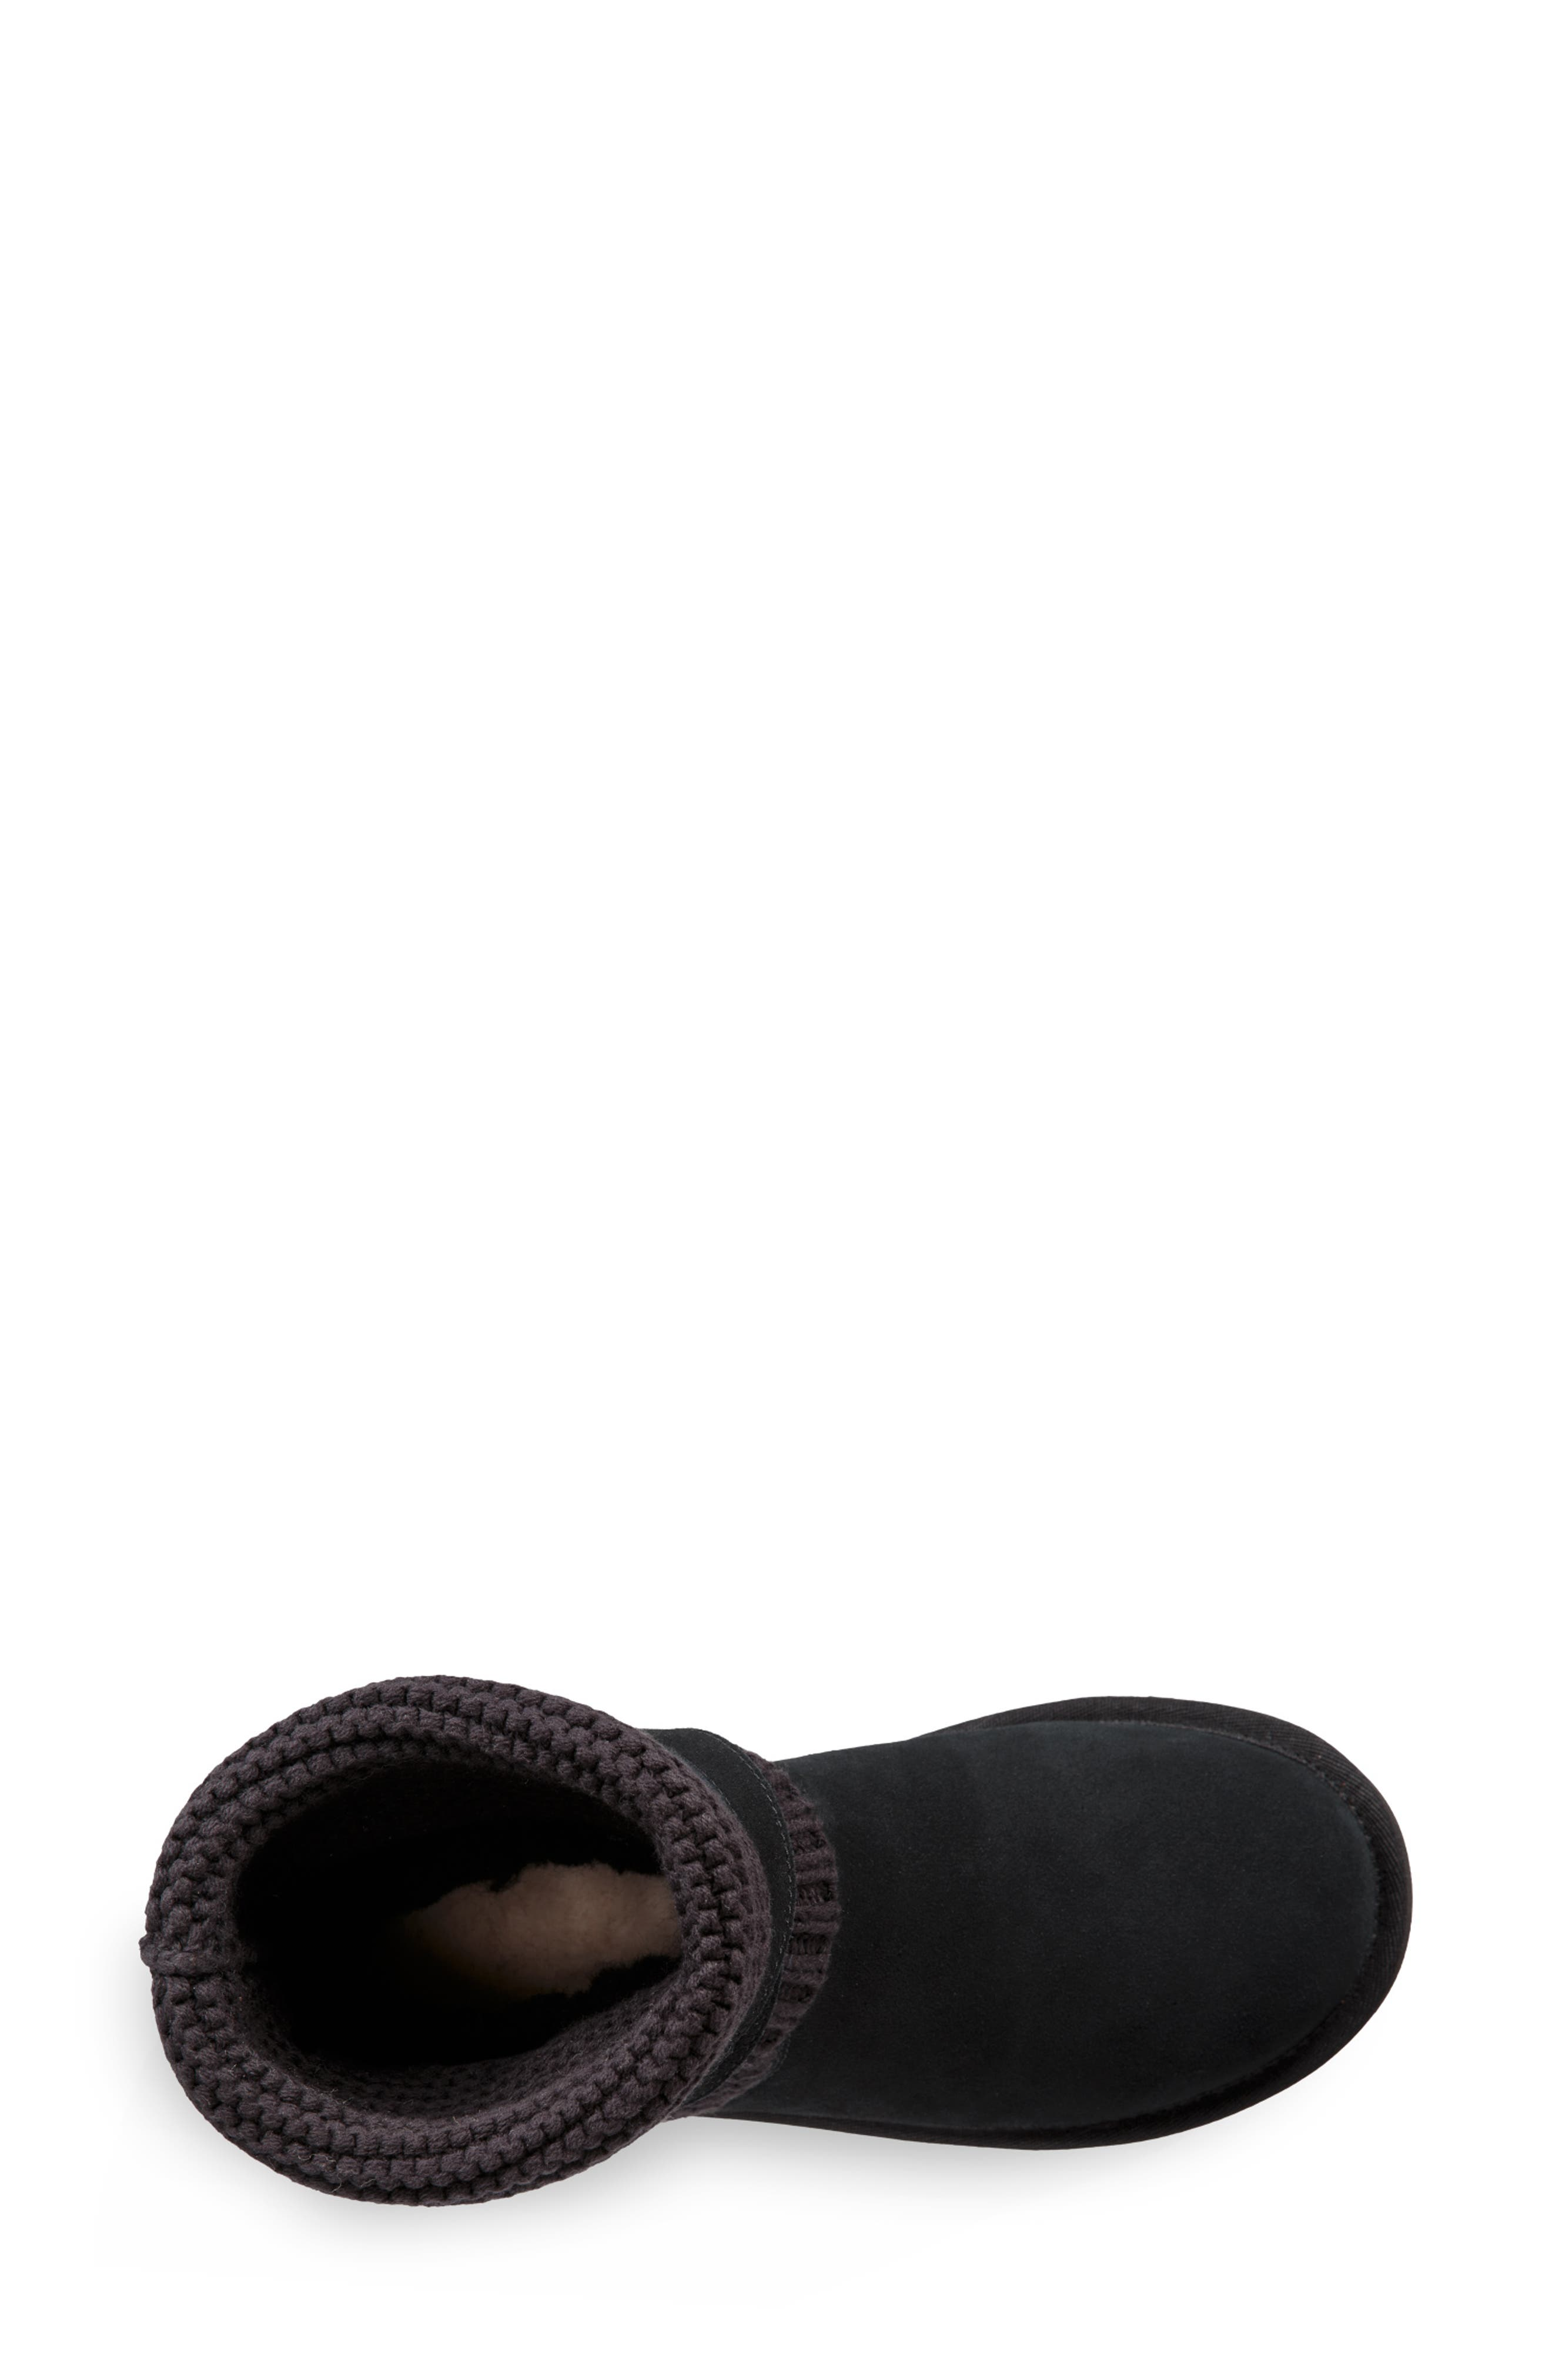 UGGpure<sup>™</sup> Strappy Purl Knit Bootie,                             Alternate thumbnail 11, color,                             BLACK SUEDE